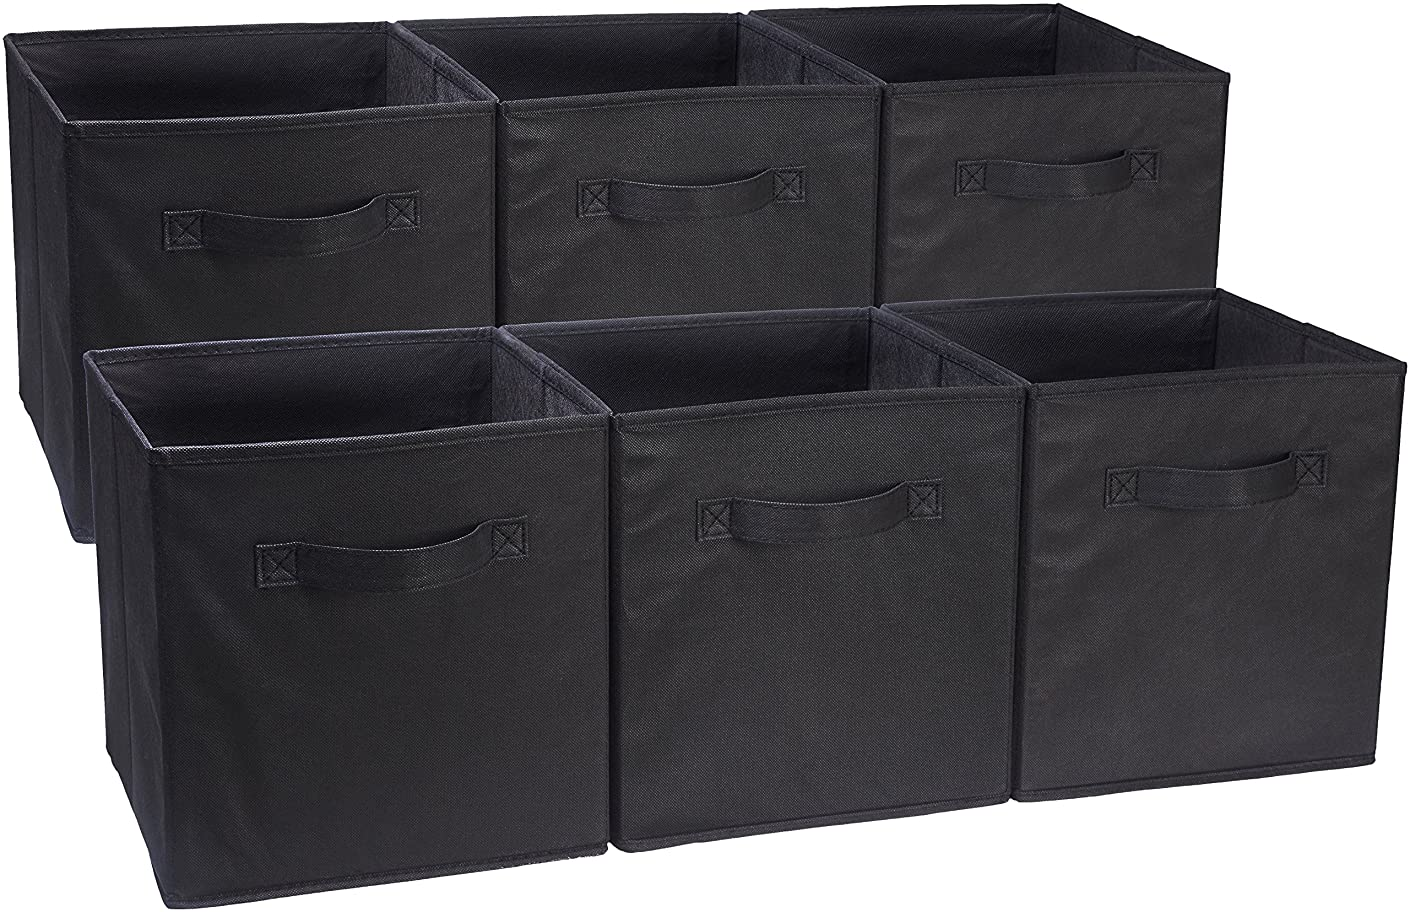 AmazonBasics Foldable Storage Bins Cubes Organizer, 6-Pack, Black